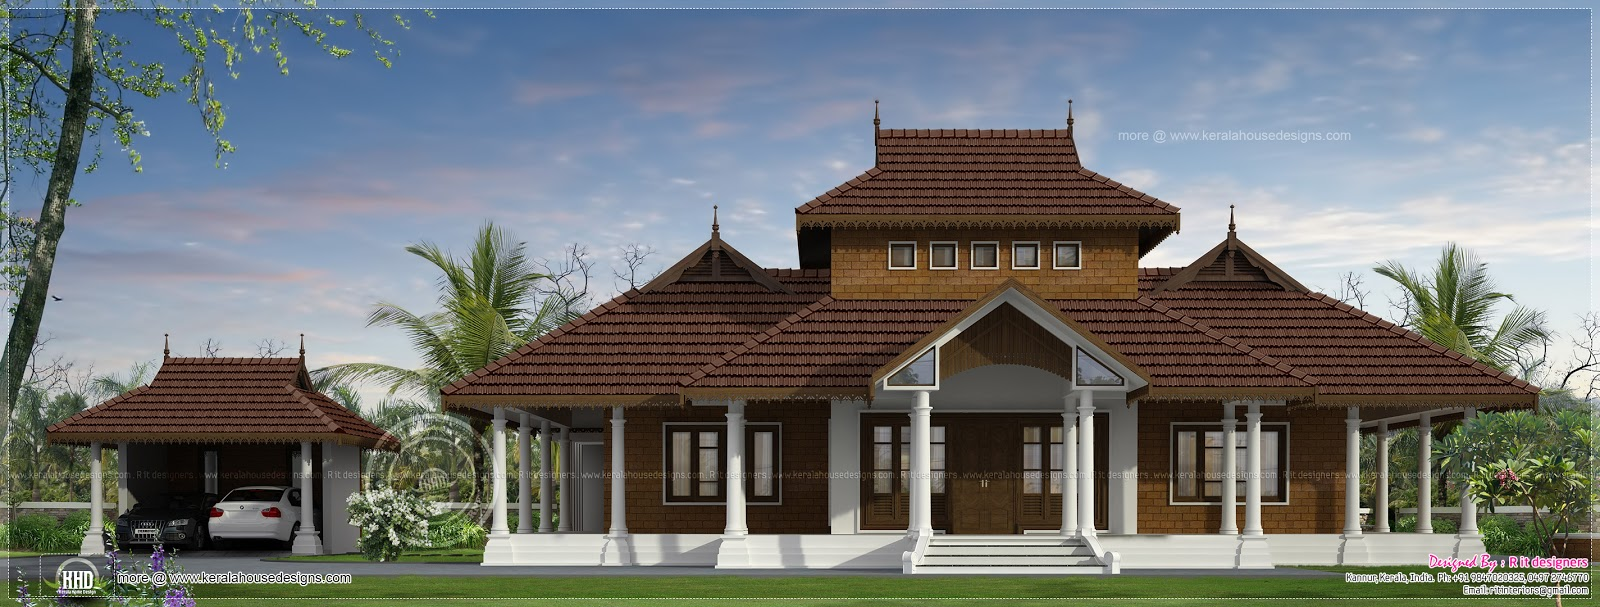 Traditional kerala villa exterior in 3070 sq ft home for Home designs traditional